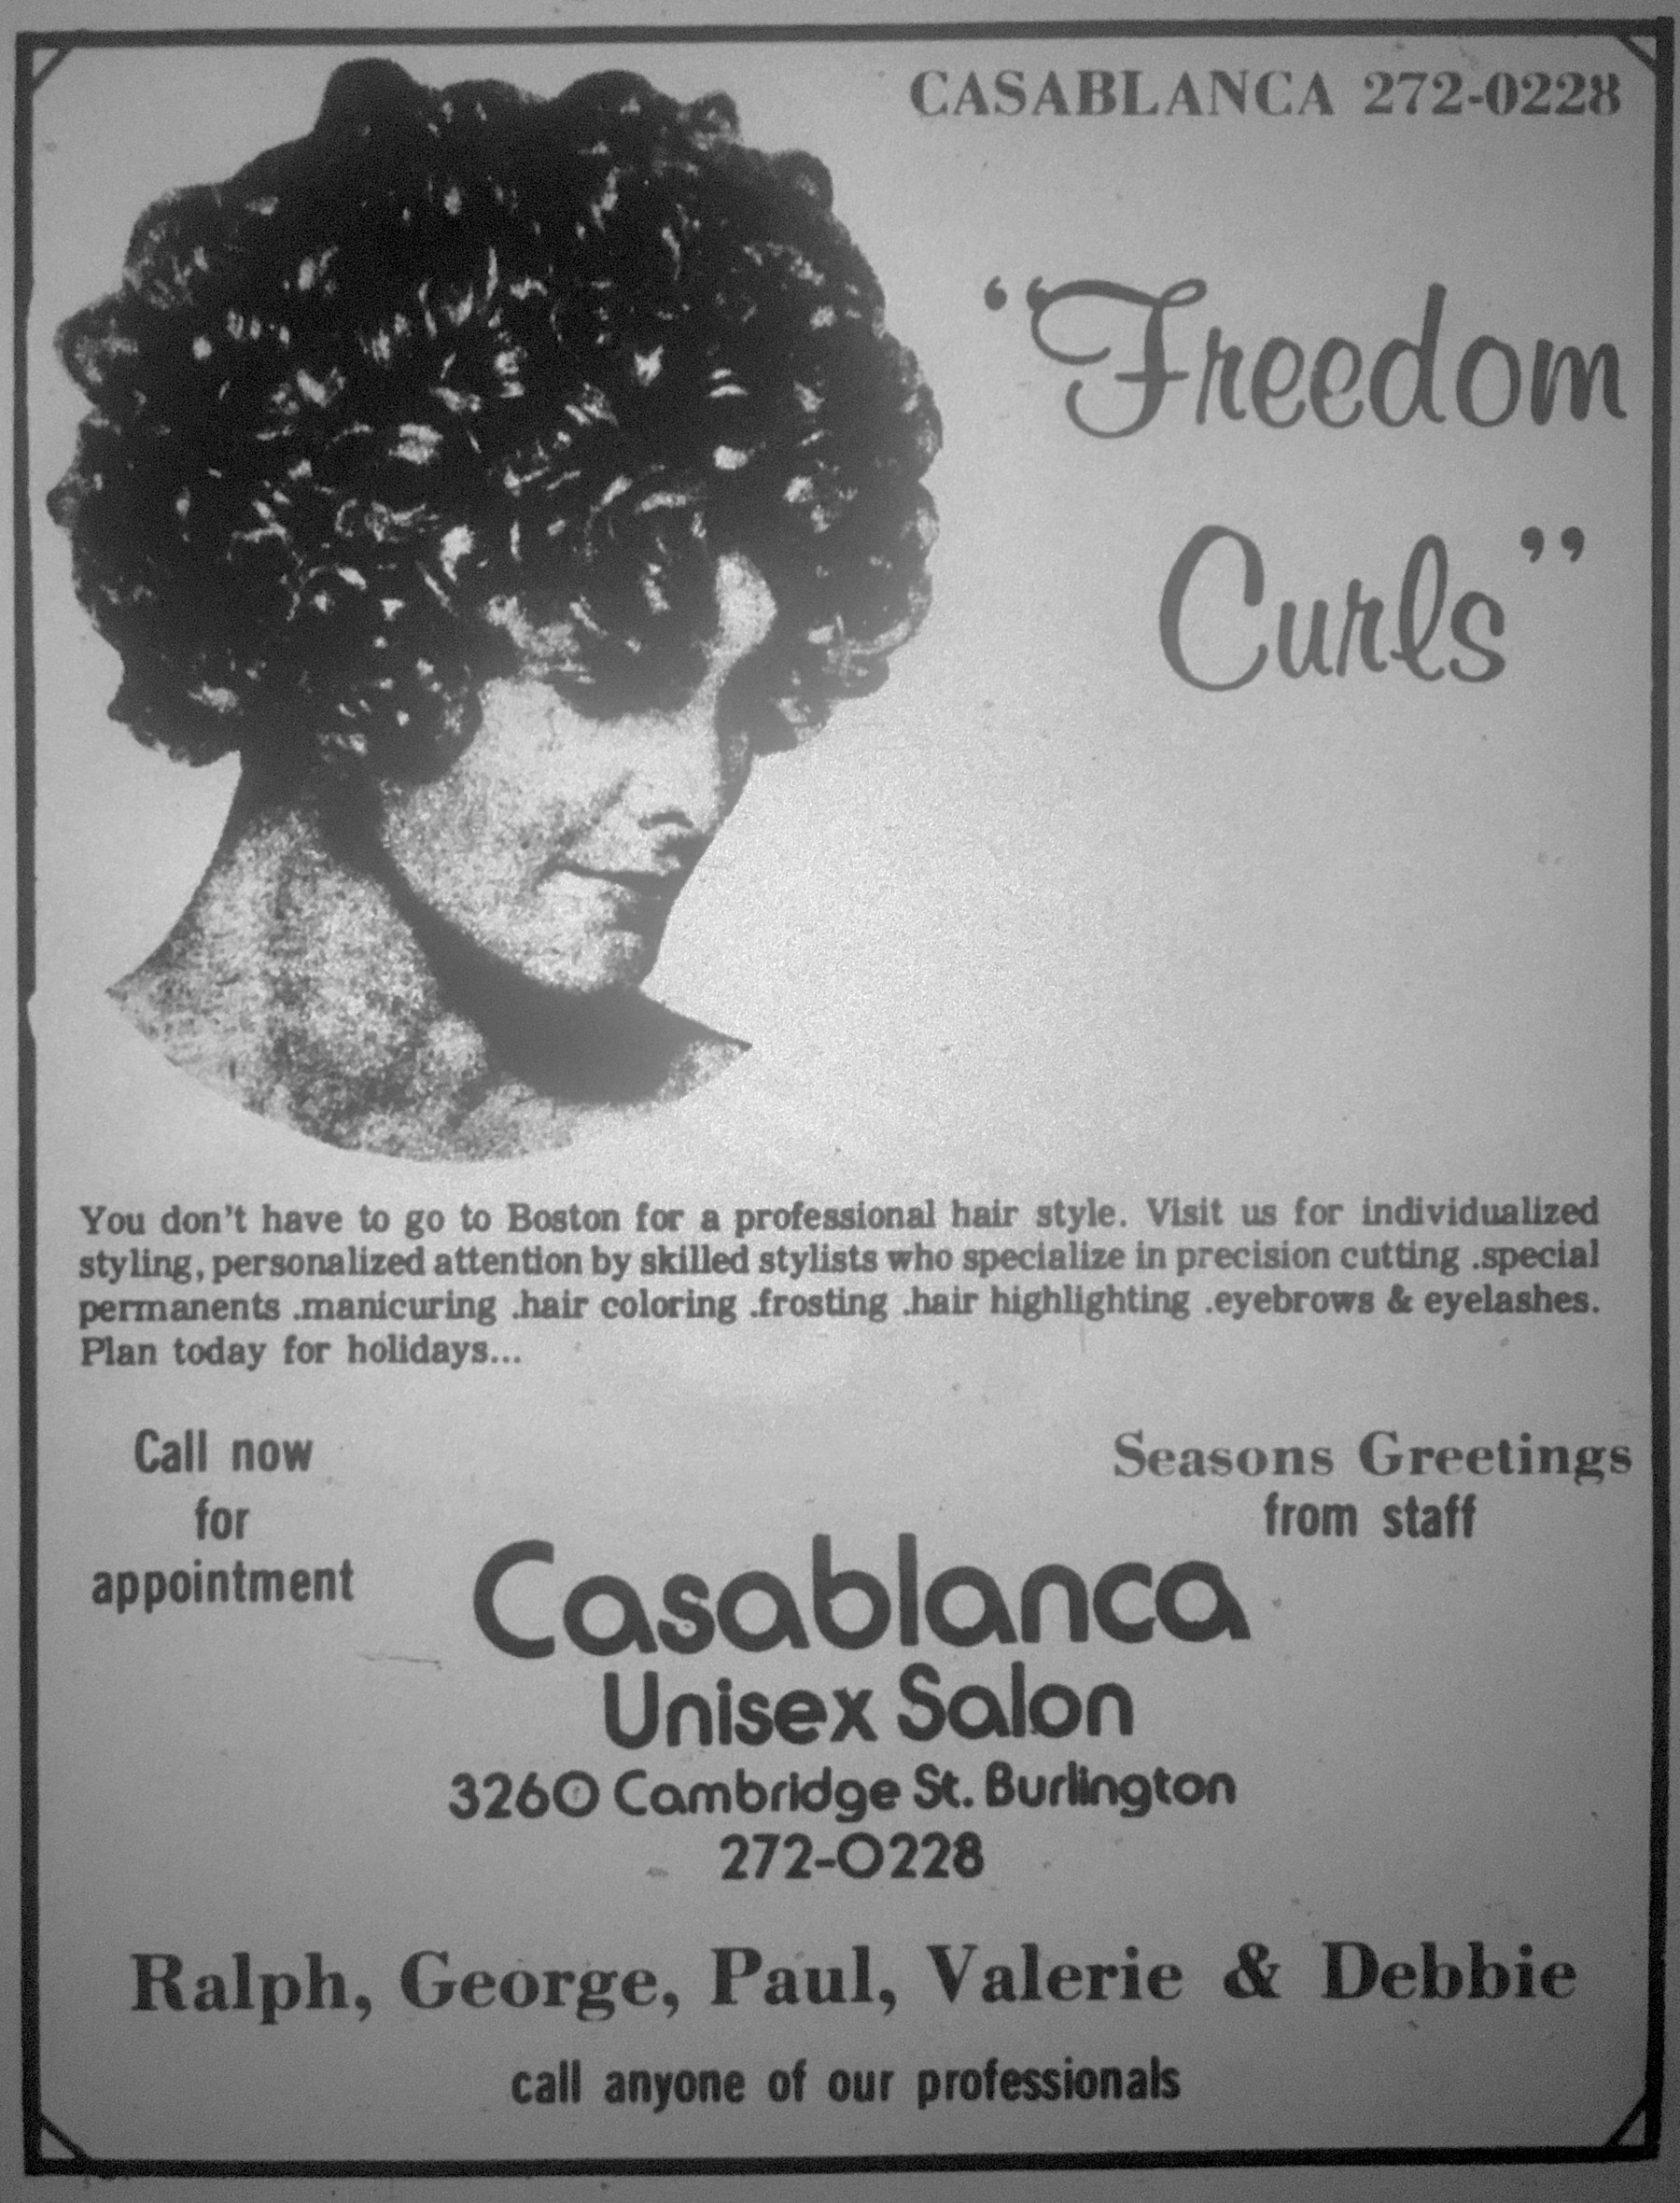 Casablanca Unisex Hair Salon Burlington MA